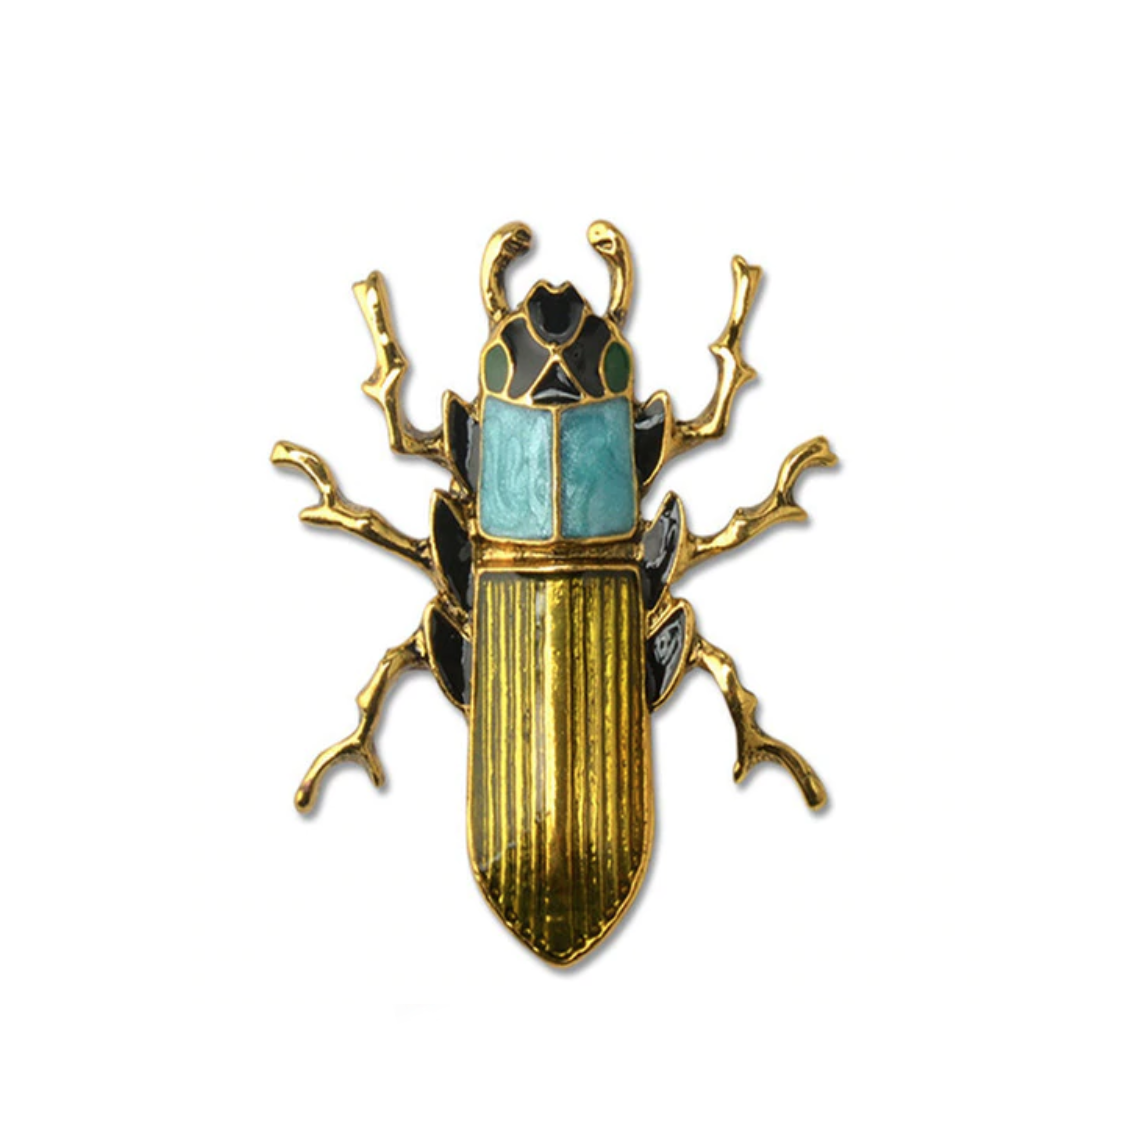 Scarab Insect Brooch